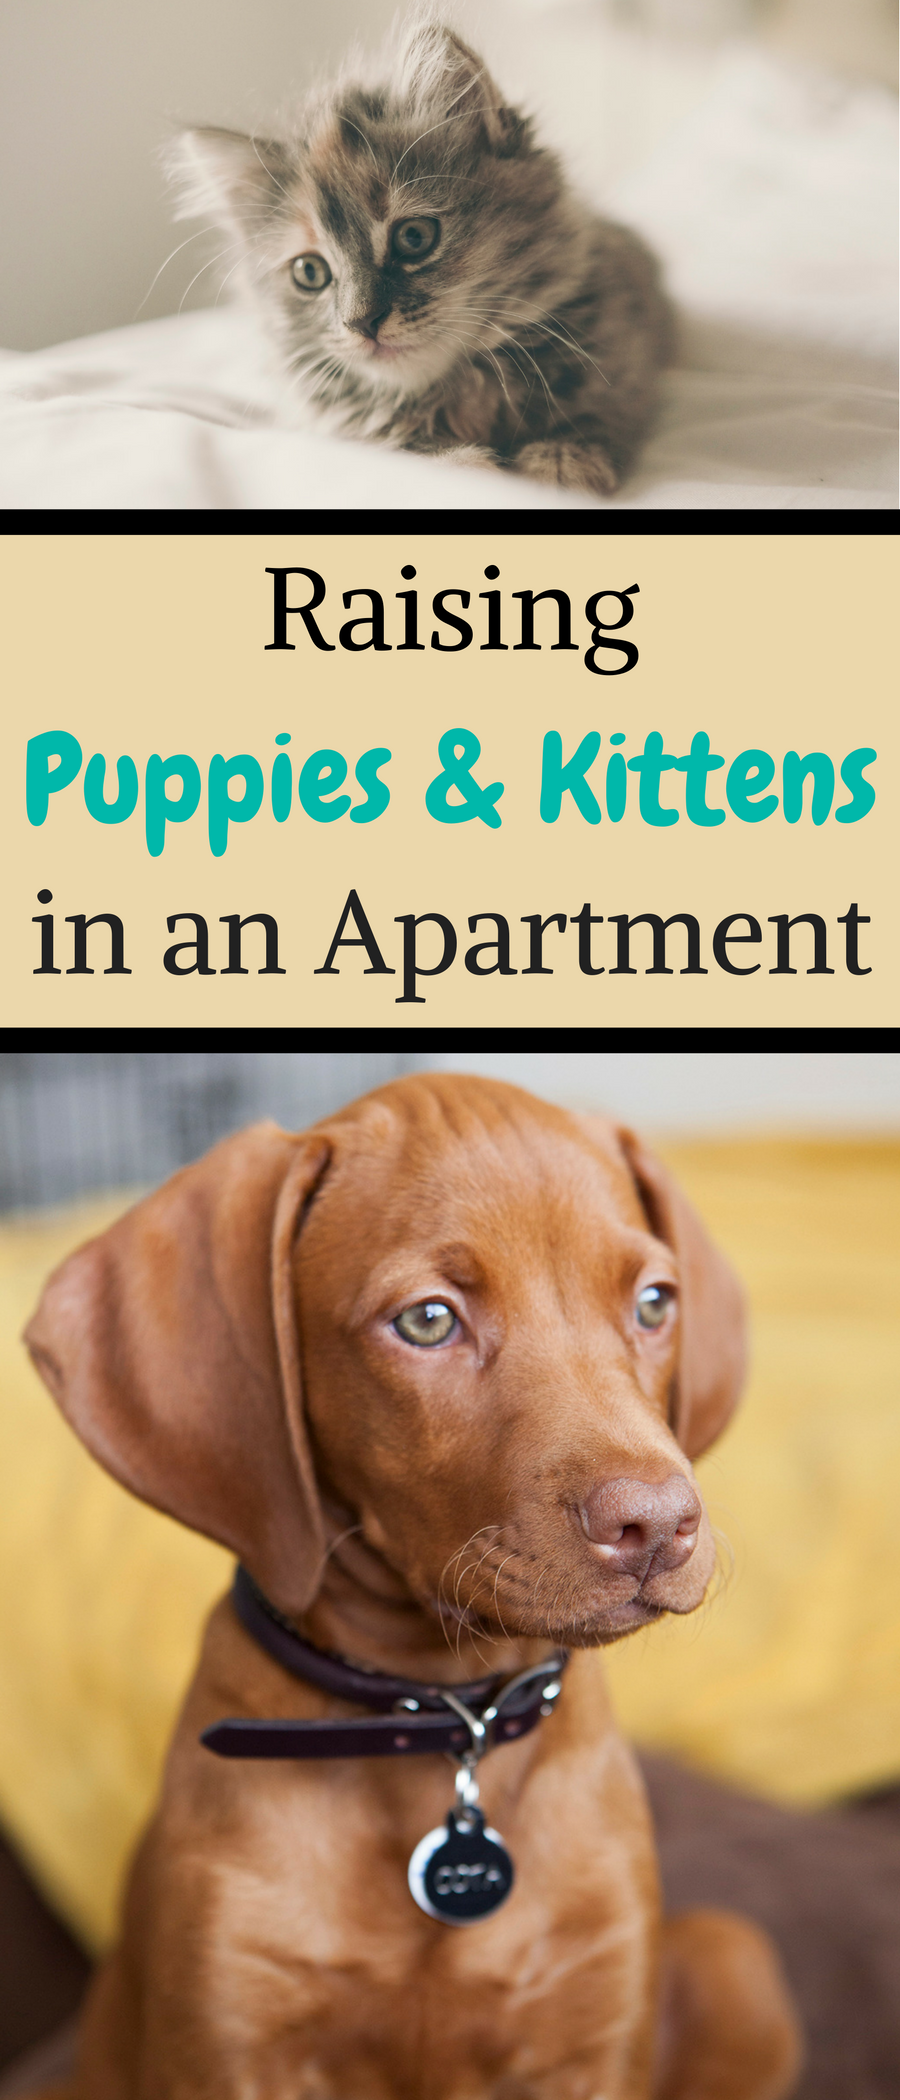 How to Raise Puppies and Kittens in an Apartment